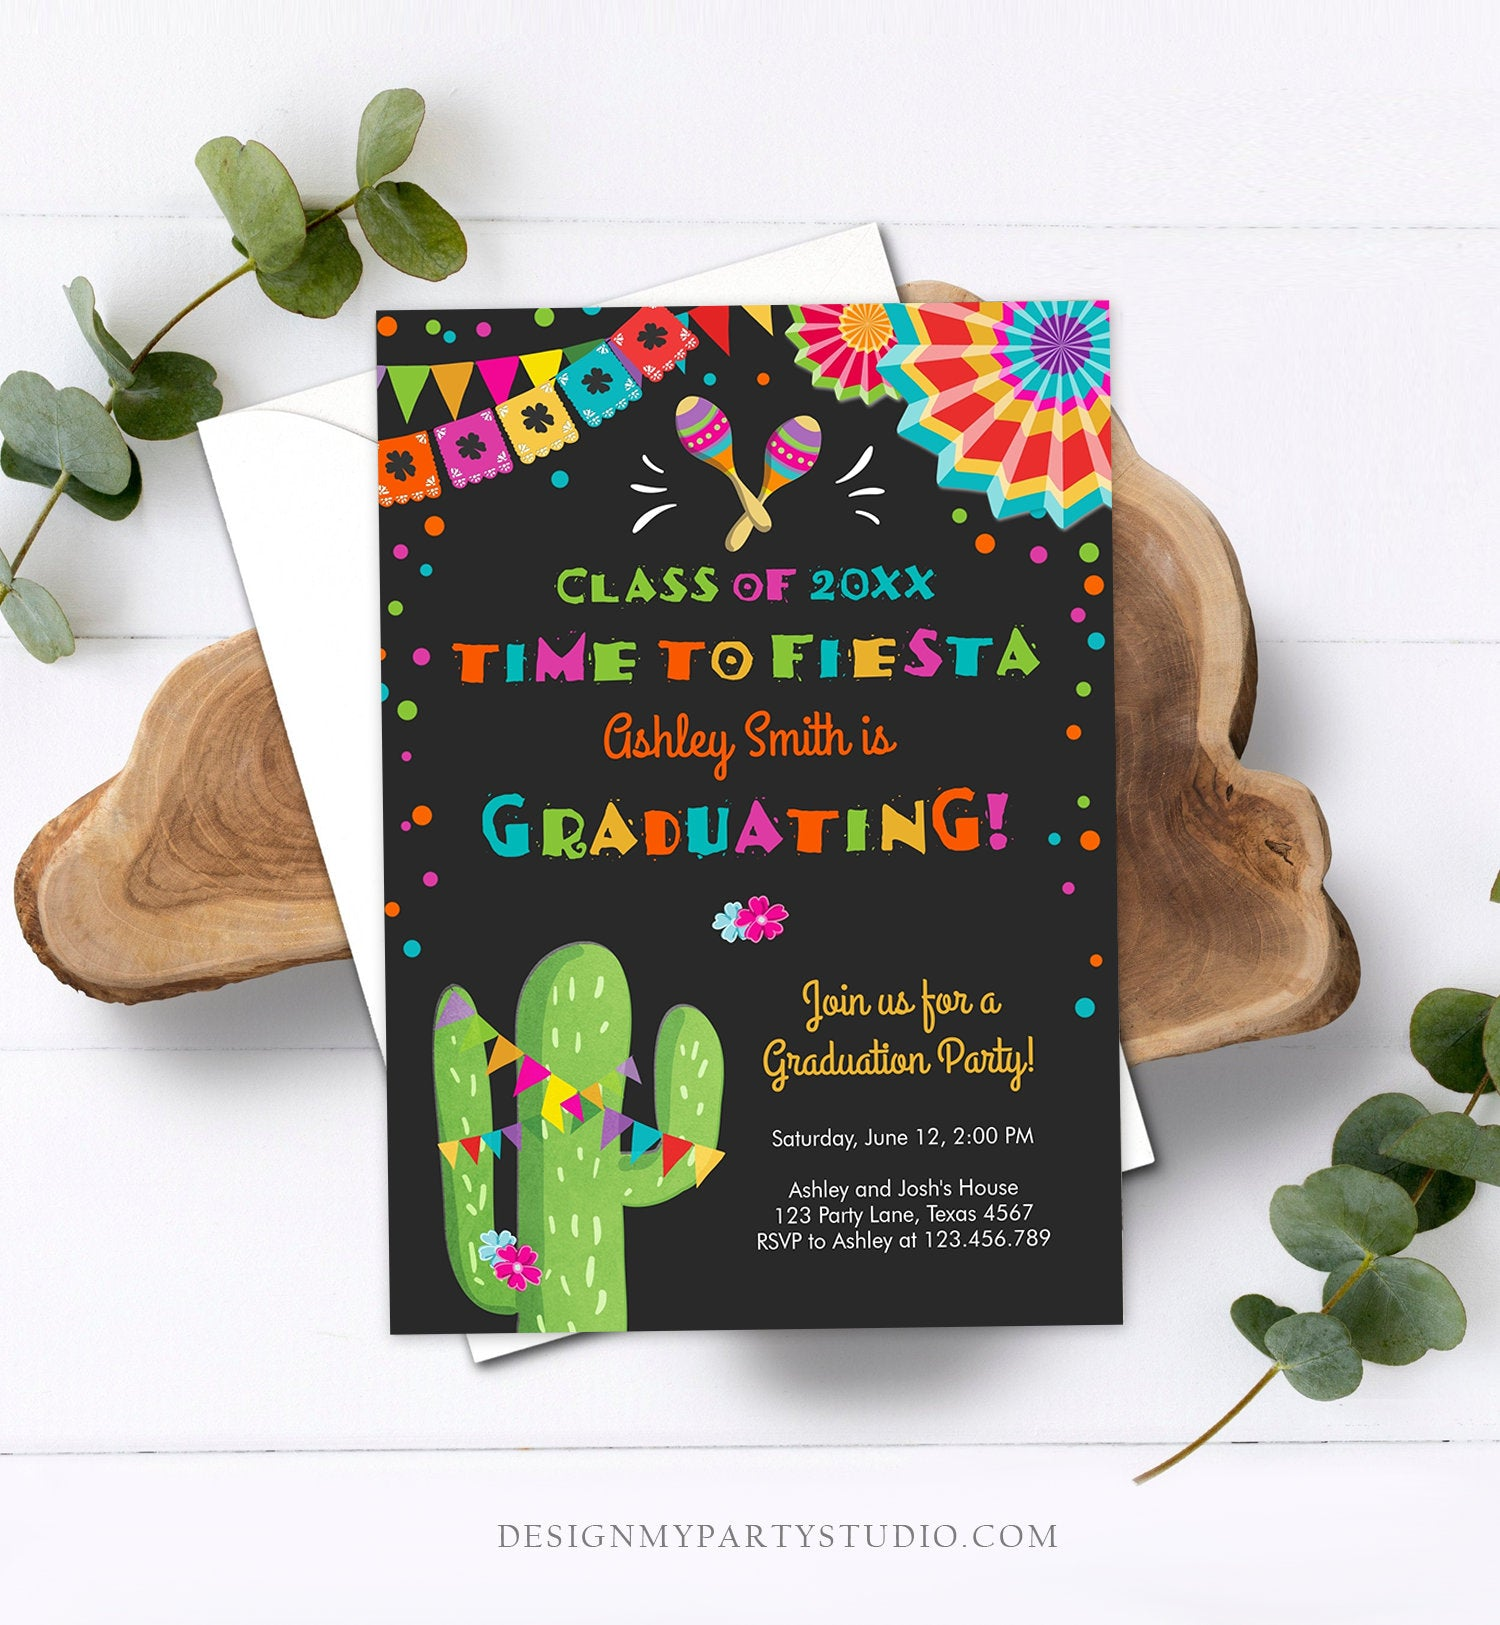 Editable Time to Fiesta Graduation Party Invitation Cactus Let's Fiesta Grad Mexican Graduate Graduating College School Corjl Template 0045